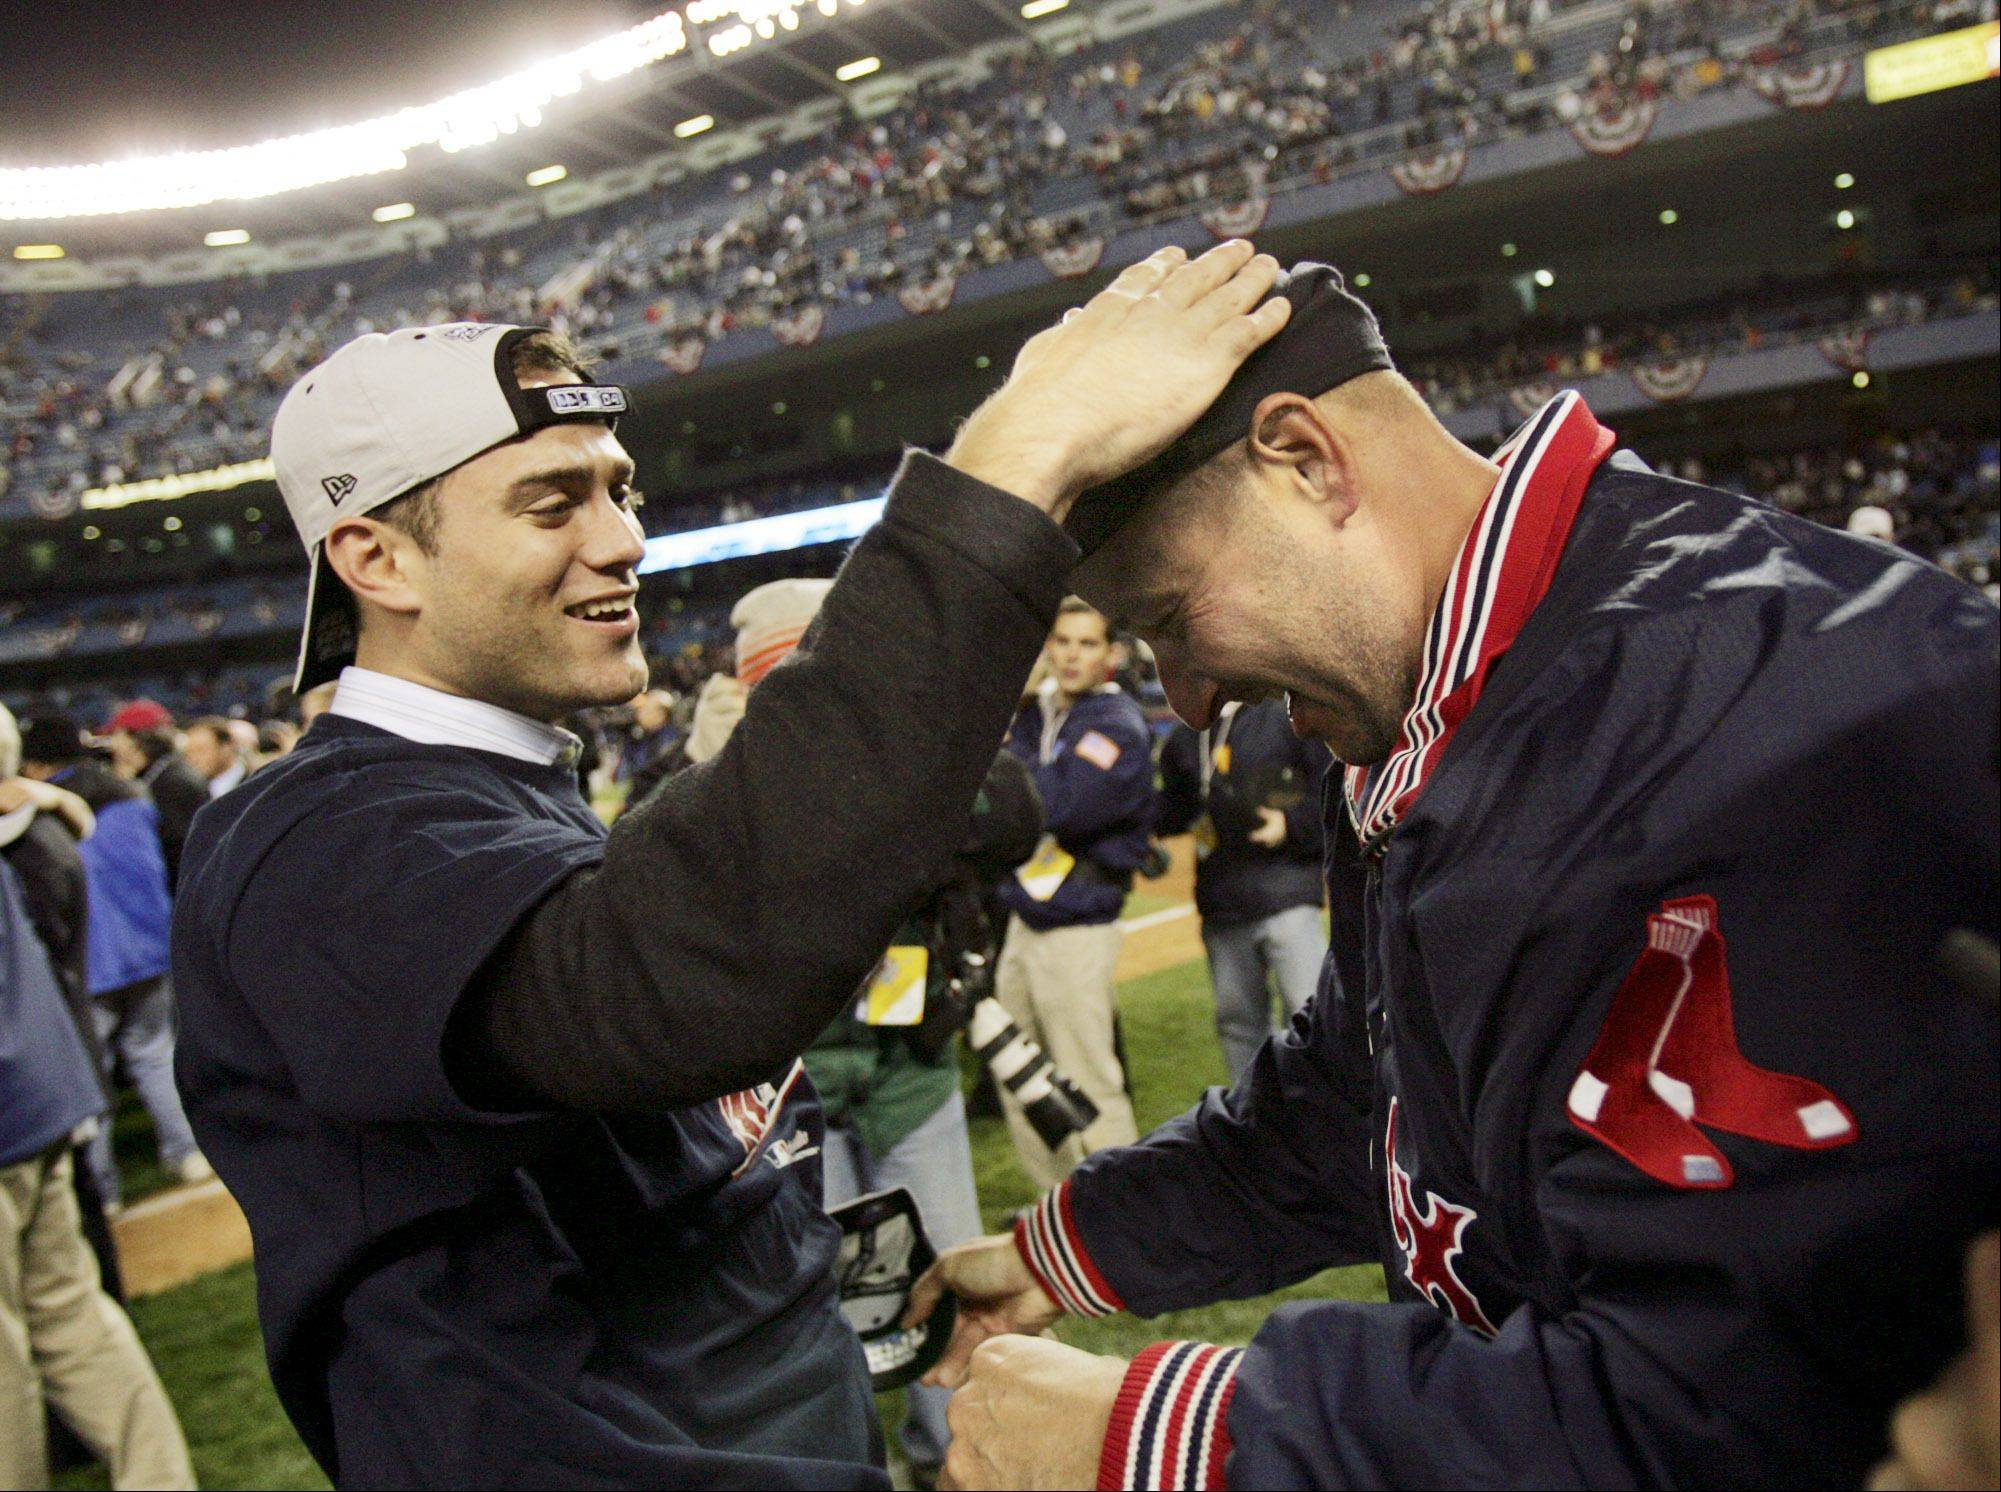 Boston Red Sox general manager Theo Epstein, left, and manager Terry Francona celebrate after Boston defeated the New York Yankees 10-3 in the deciding game of the AL championship series Wednesday, Oct. 20, 2004, in New York.